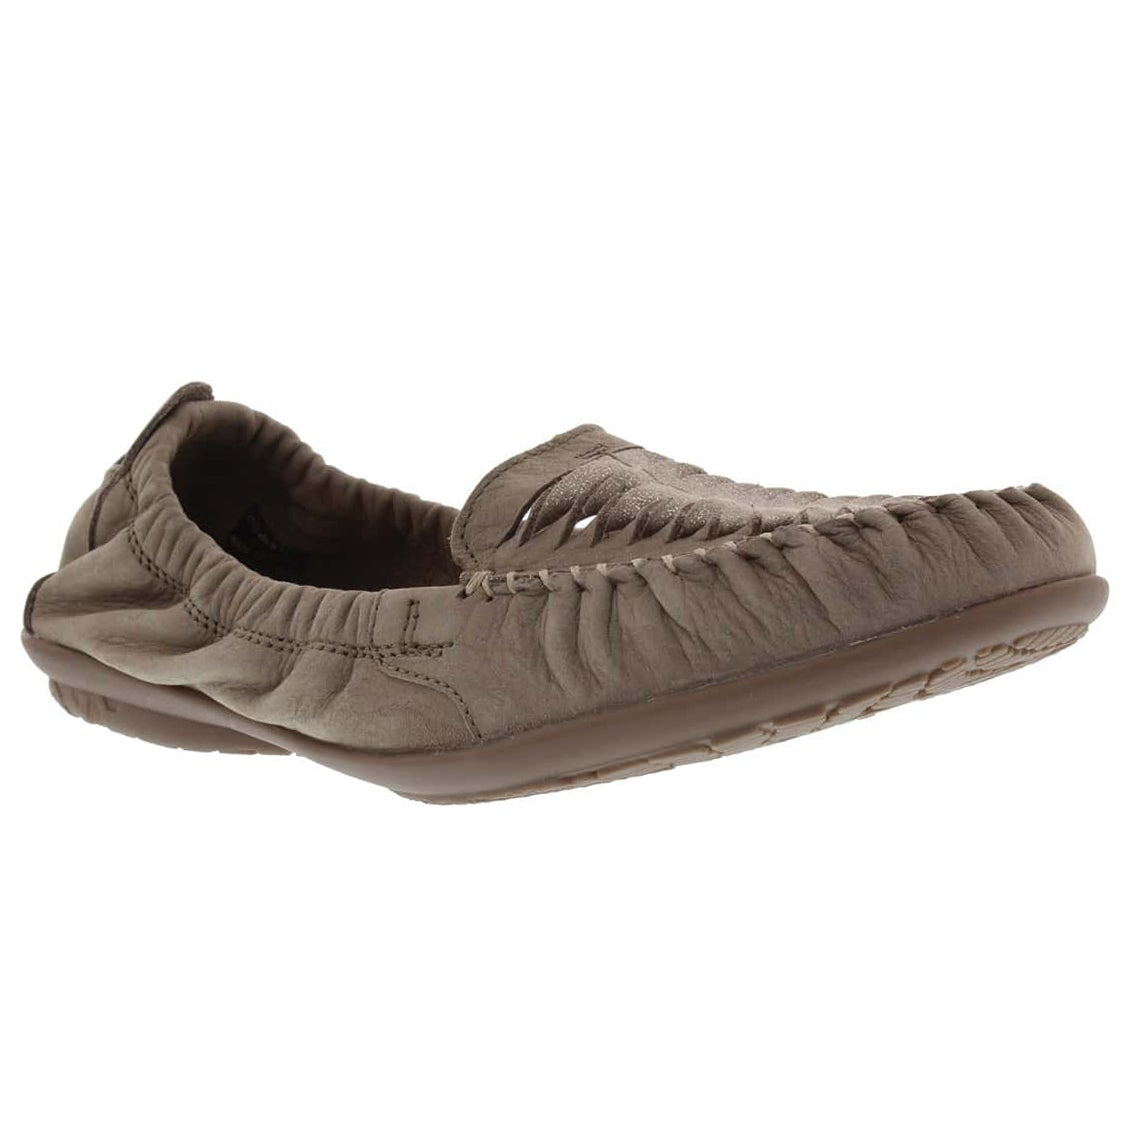 Lds Lydia Ceil taupe slip on loafer